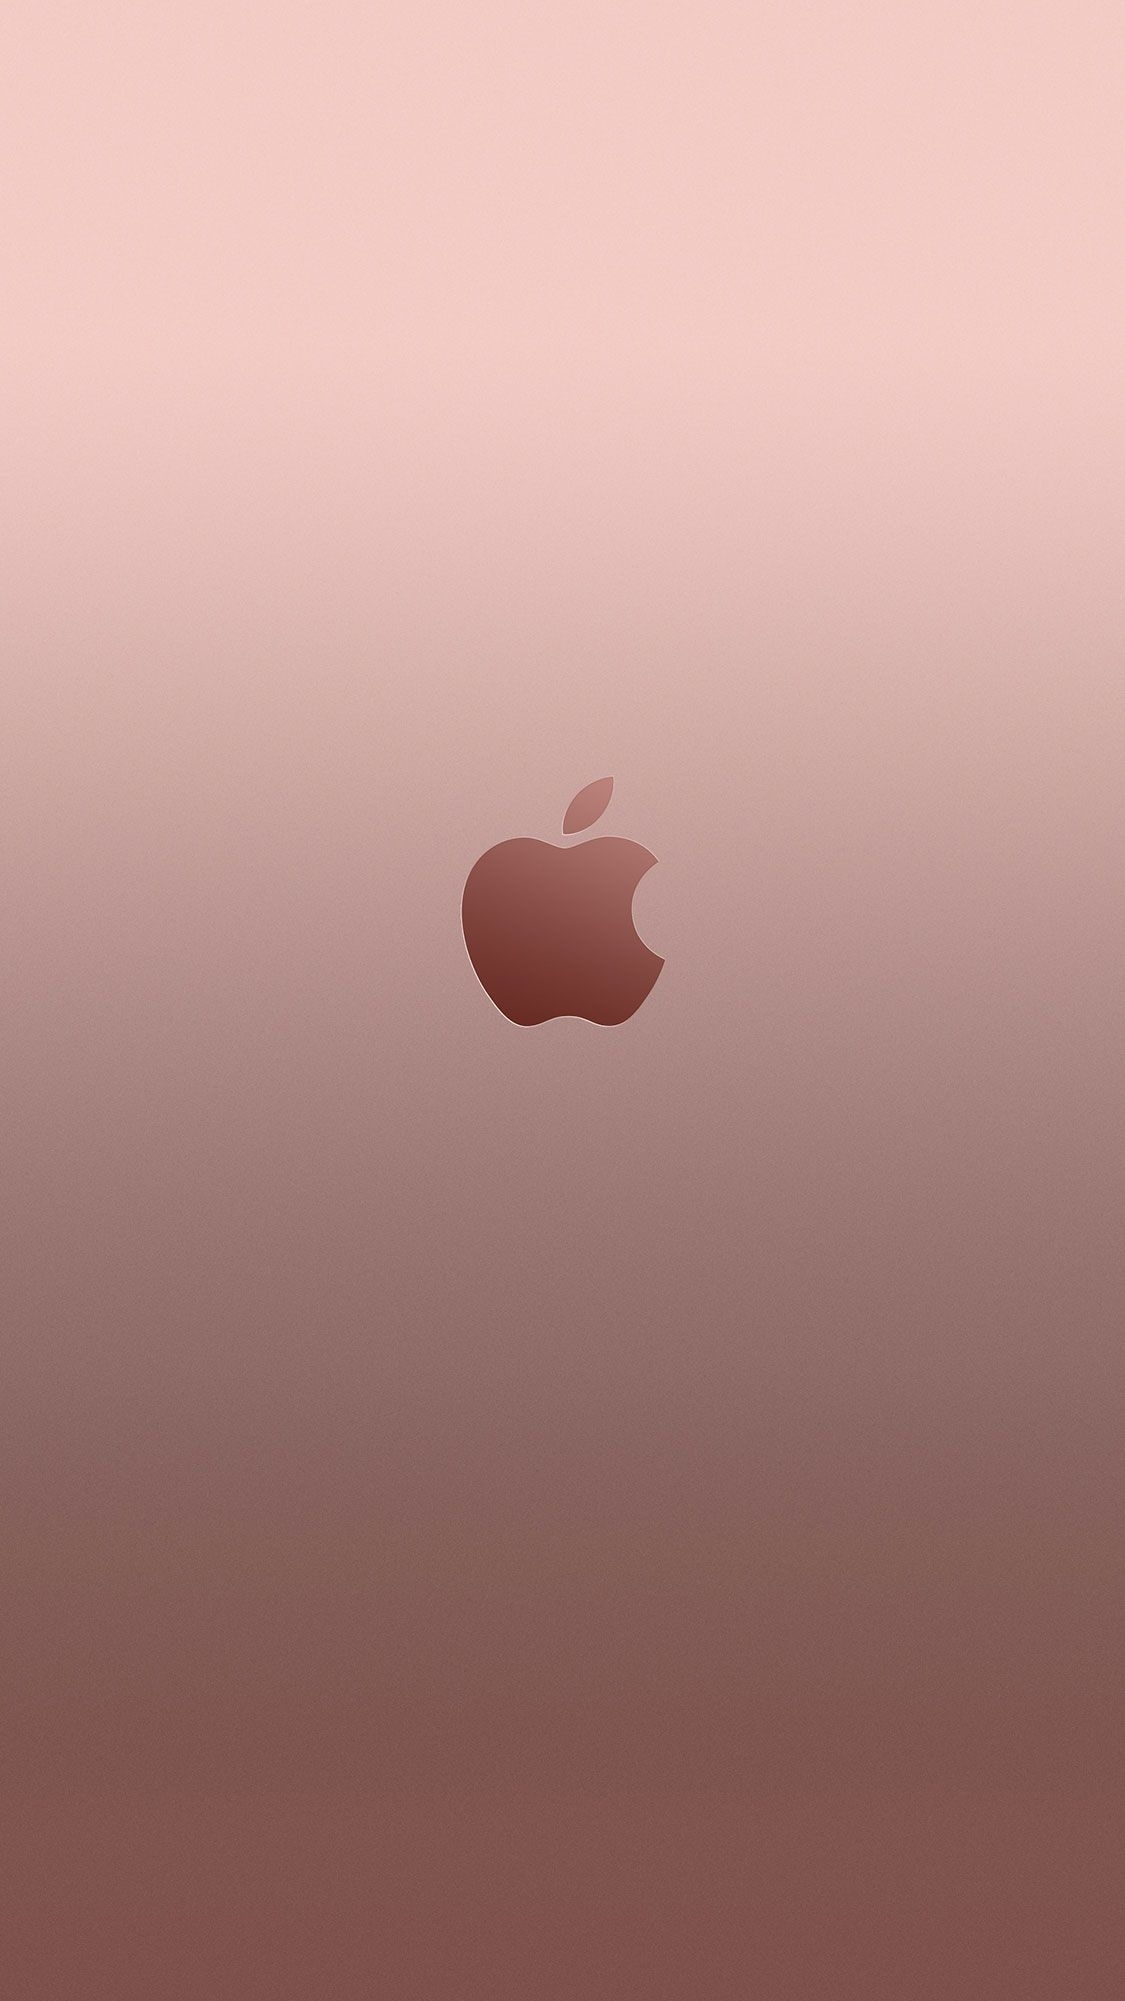 rose-gold--apple-iphone-6s-wallpaper | fond d'écran | pinterest